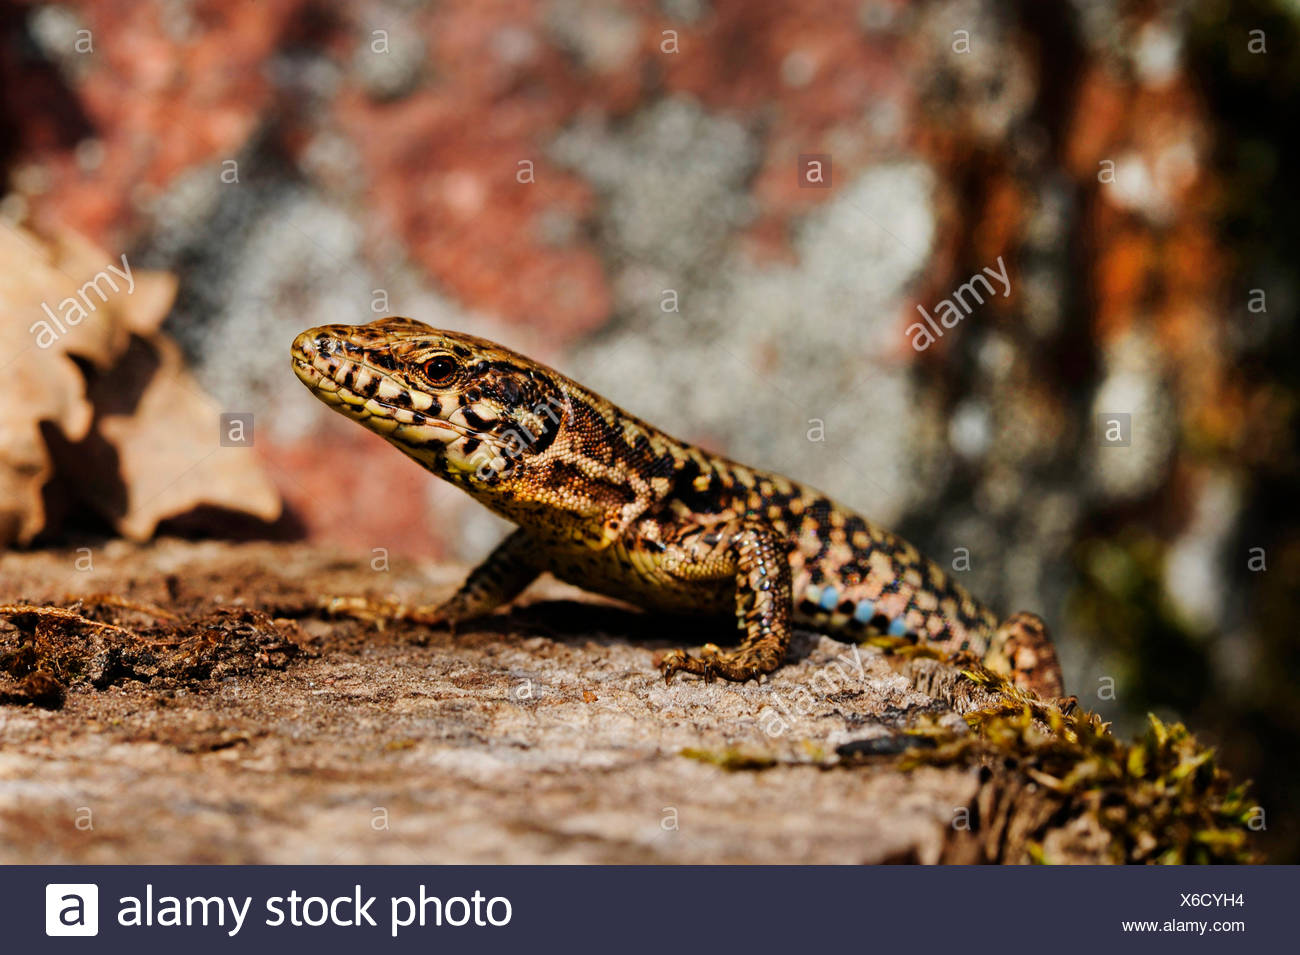 common wall lizard (Lacerta muralis, Podarcis muralis), on a tree snag, side view, Germany, Baden-Wuerttemberg, Black Forest Stock Photo